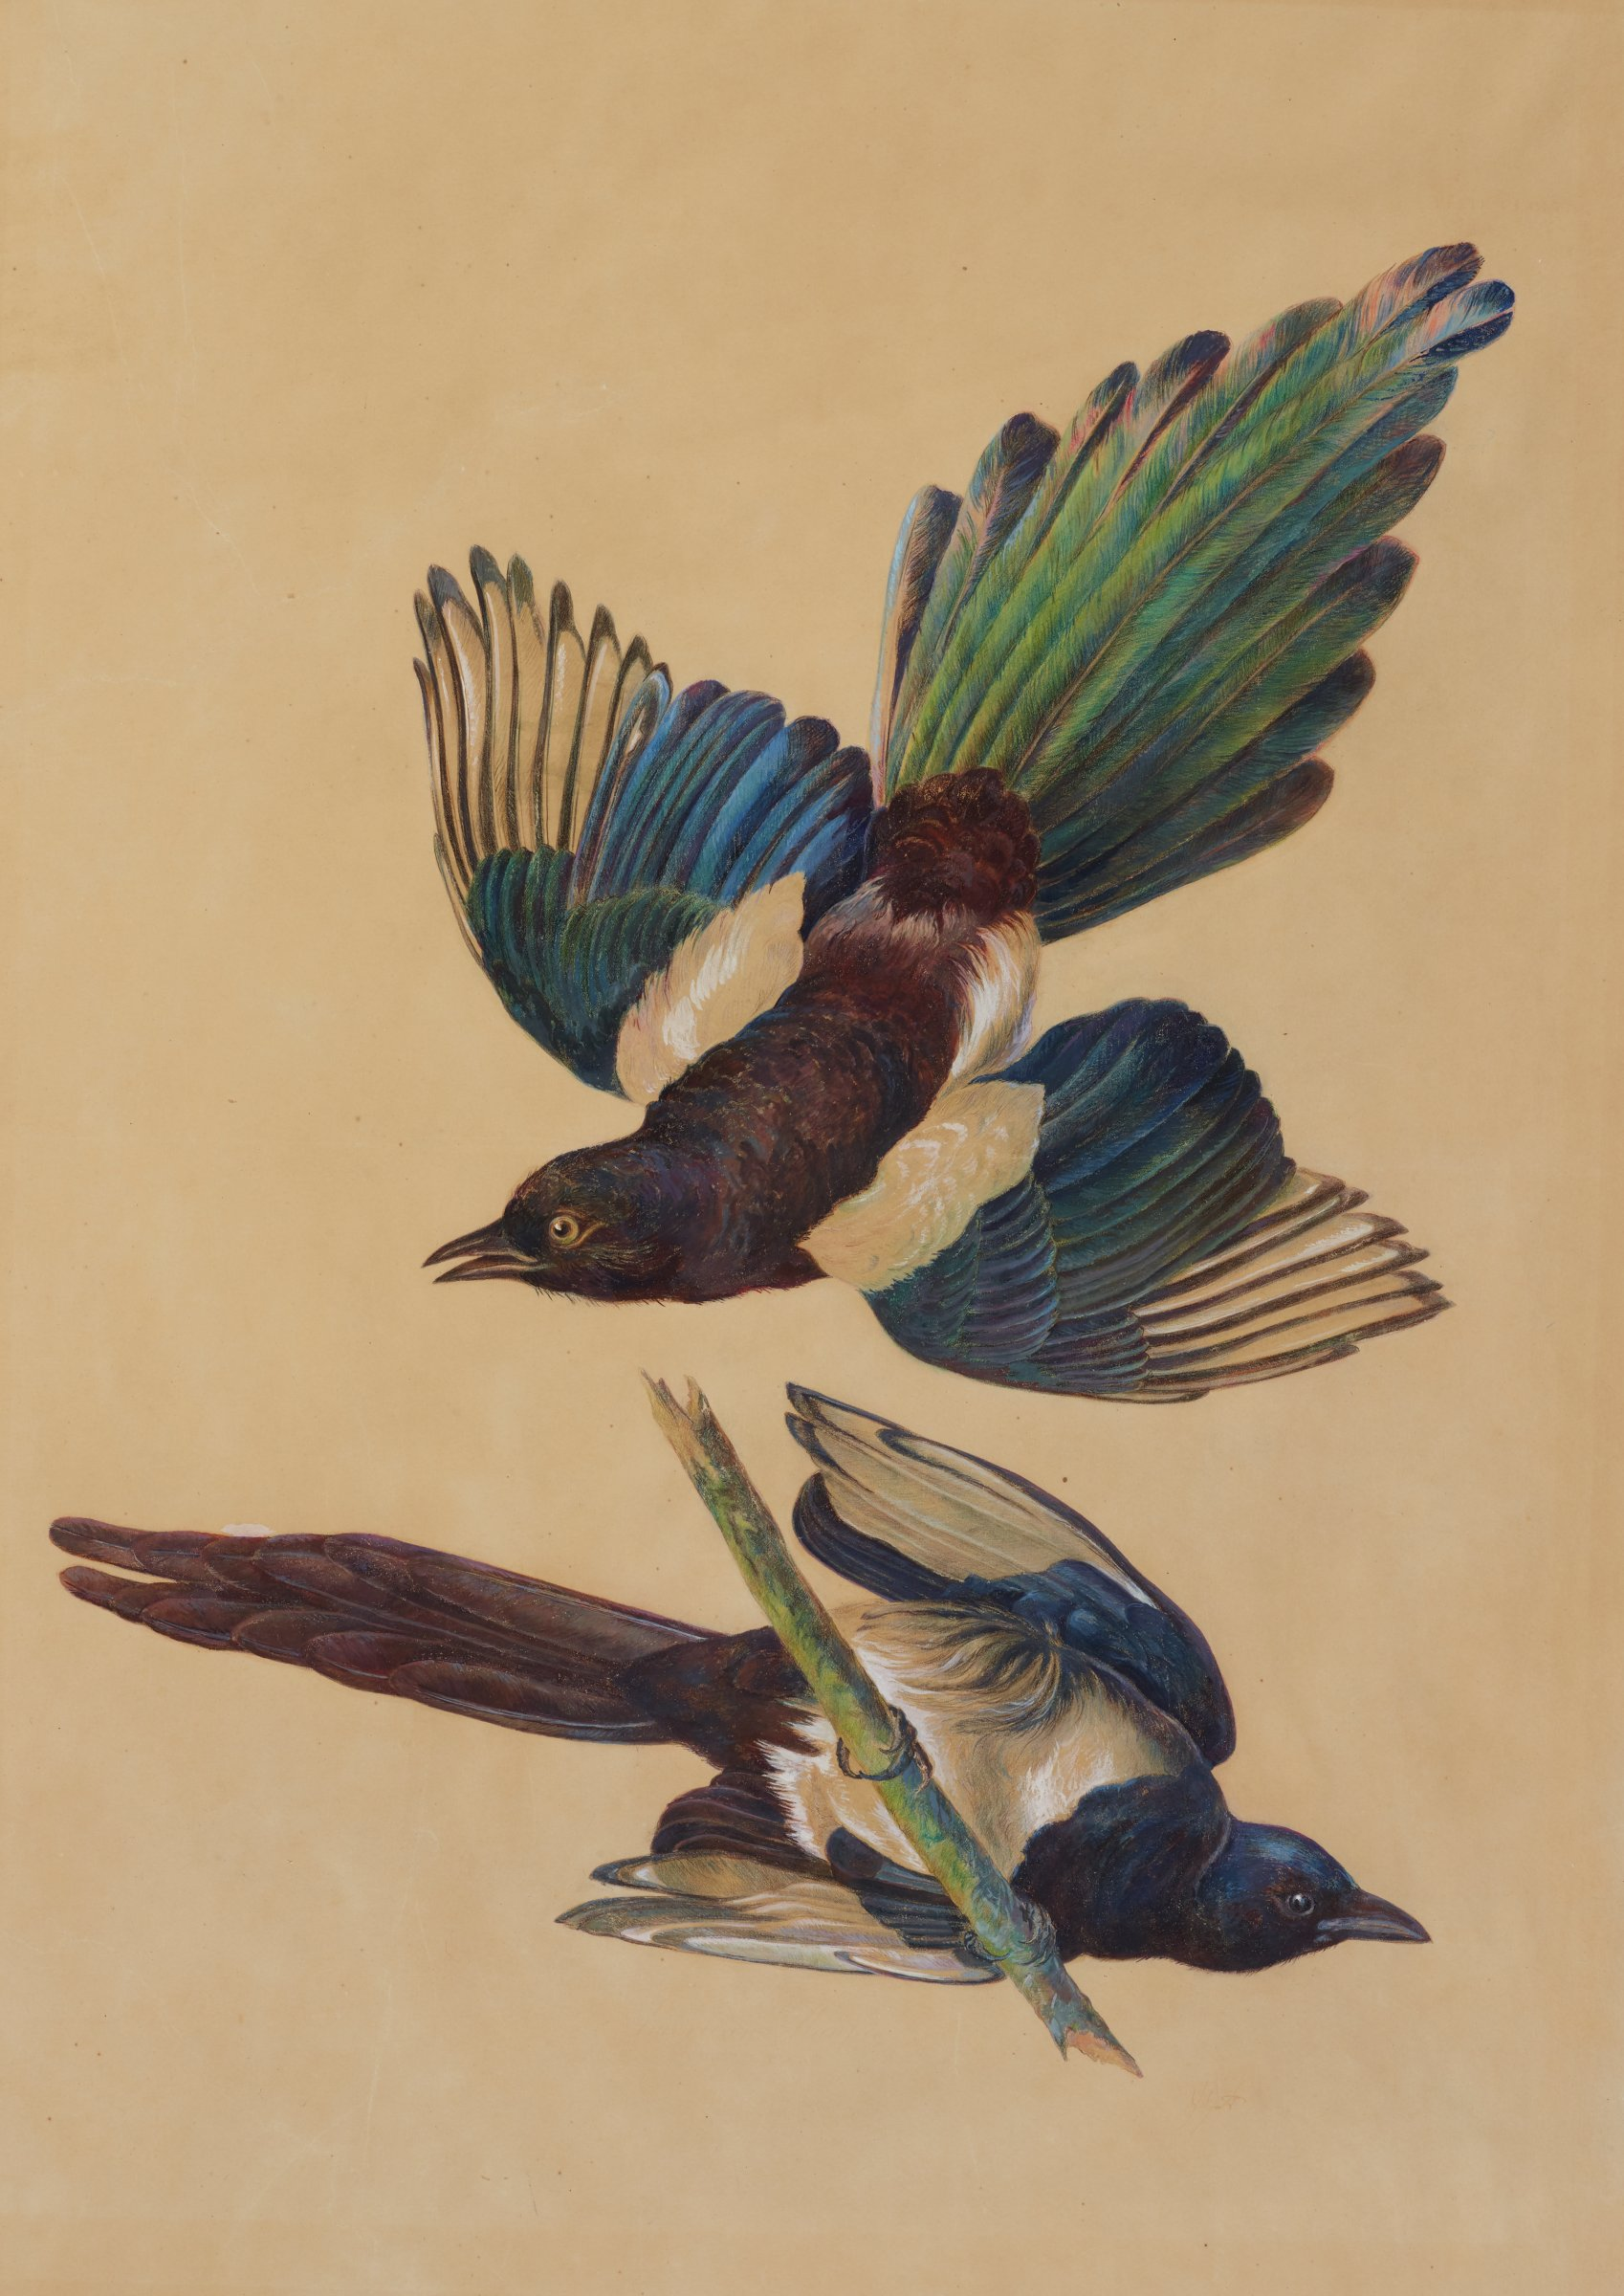 Two black-billed magpies are shown, one with wings fully expanded, and another sitting on a tree branch with its stomach to the viewer. The bodies are primarily covered with black and white feathers. The tails and wings contains green, purple, and green feathers with an iridescent-like sheen.